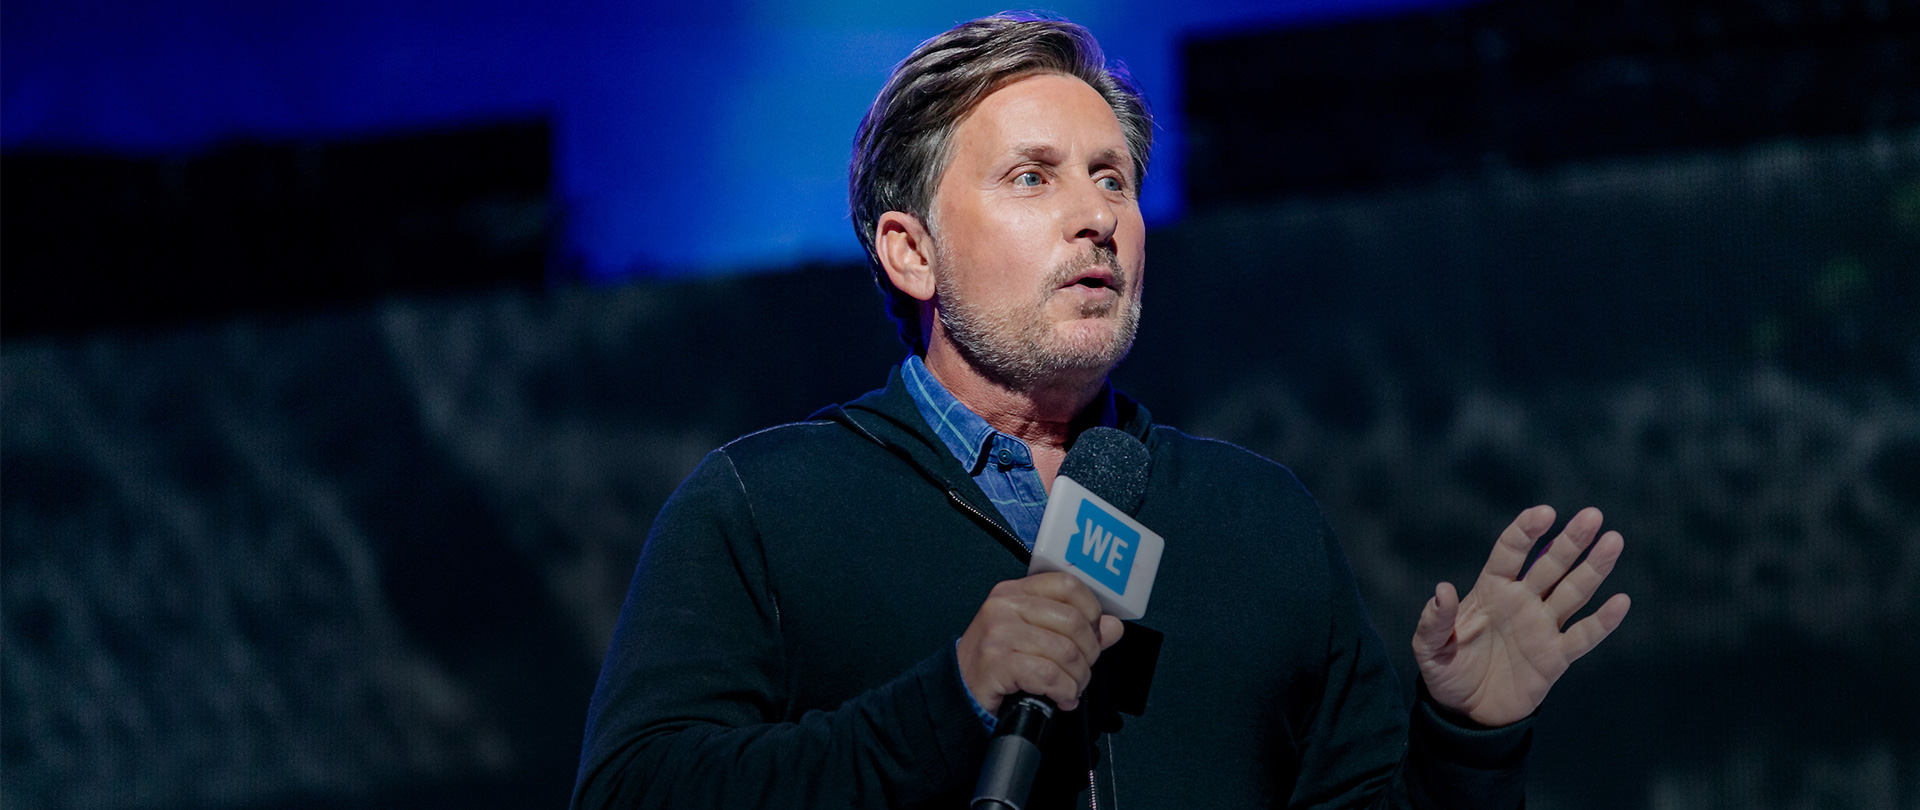 Emilio Estevez gets the importance of teachers